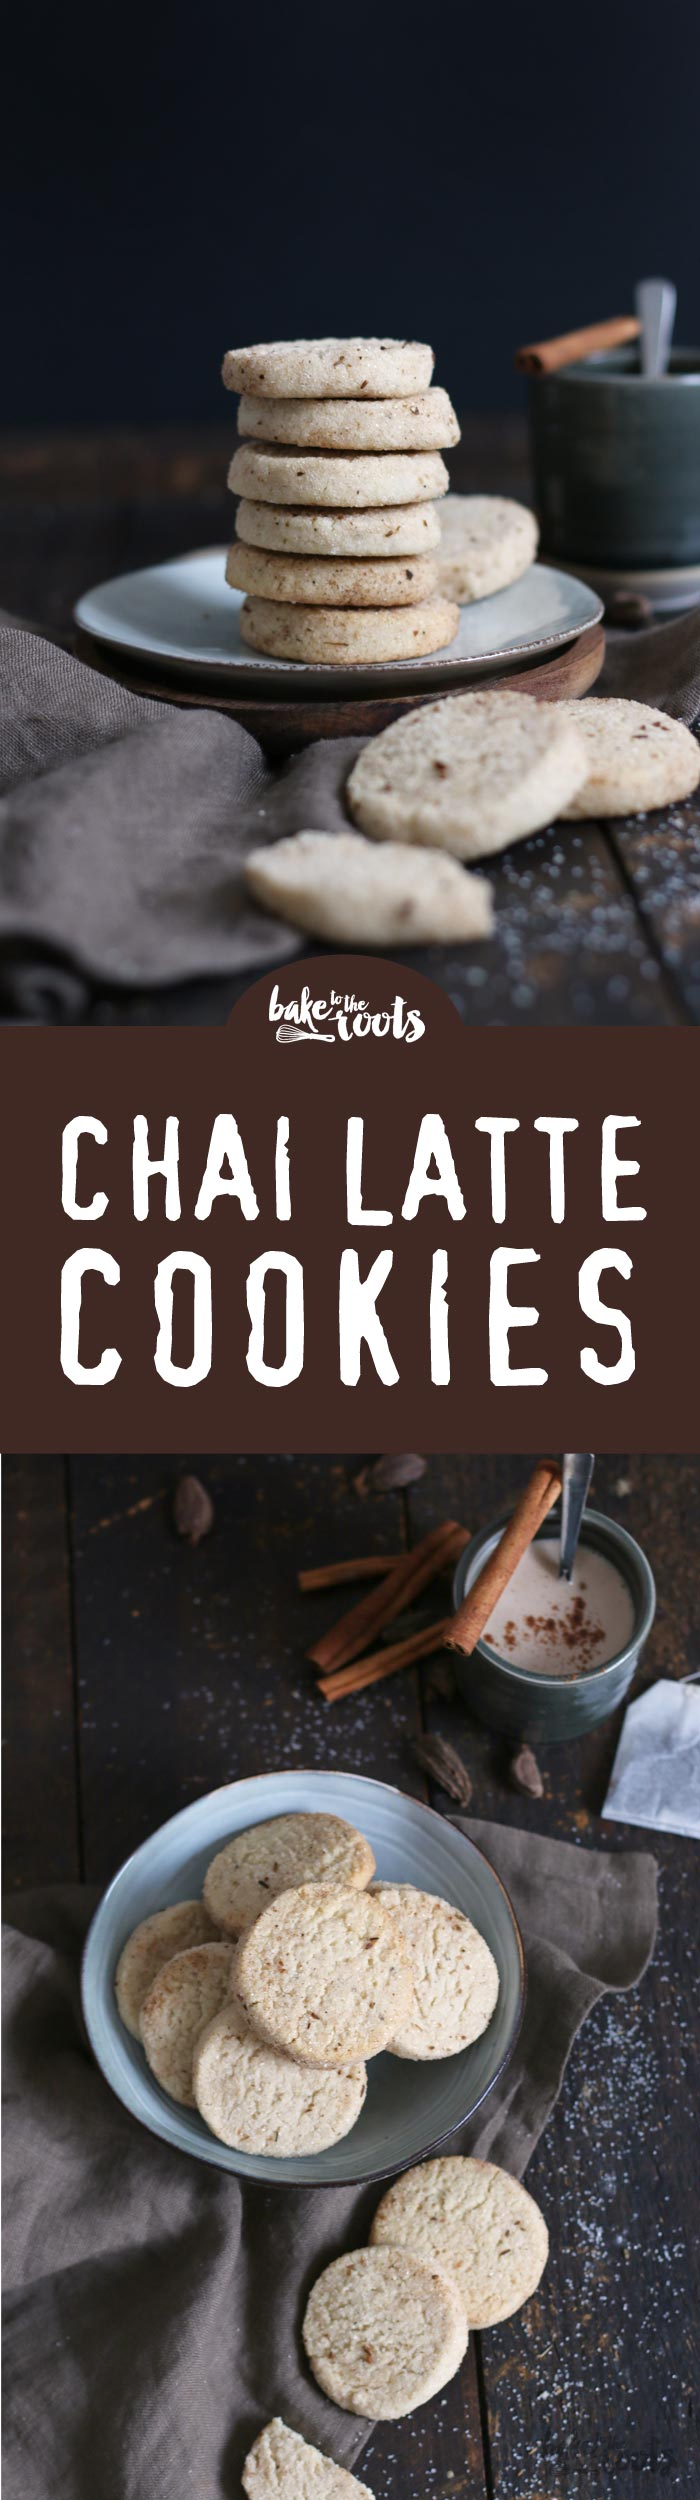 Leckere Chai Latte Cookies | Bake to the roots